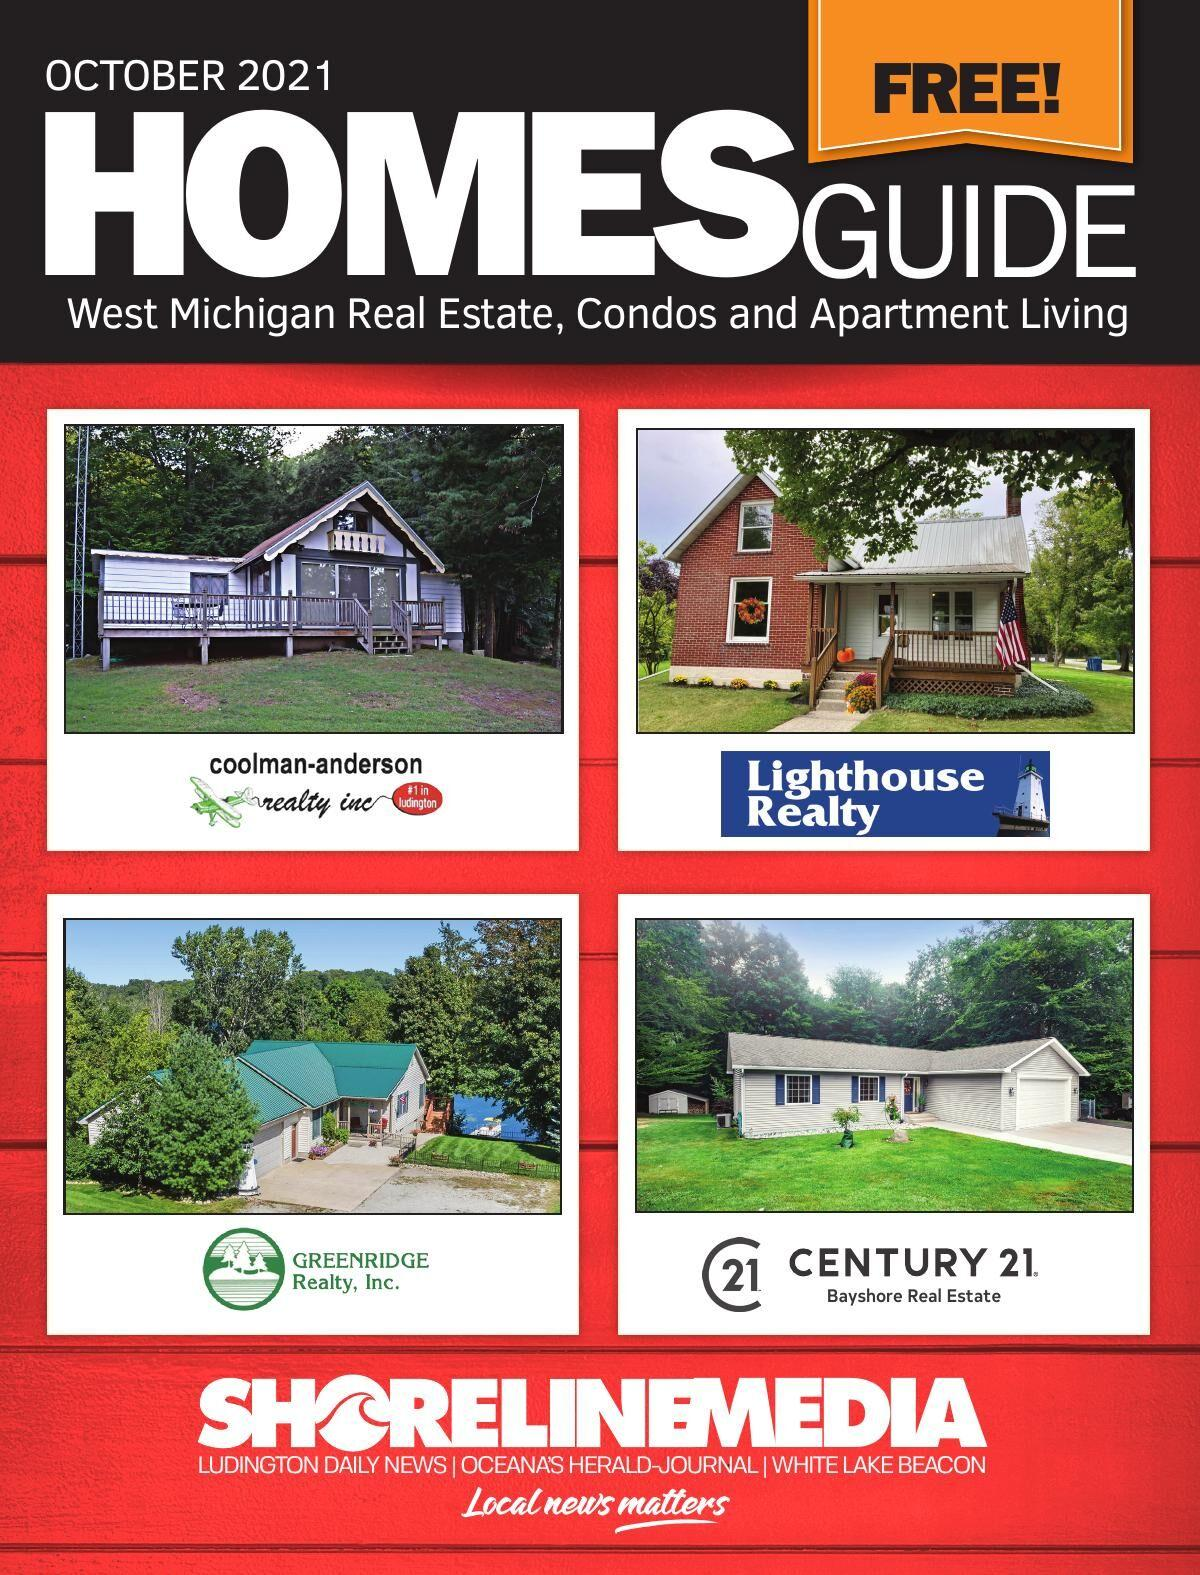 Homes Guide - October 2021